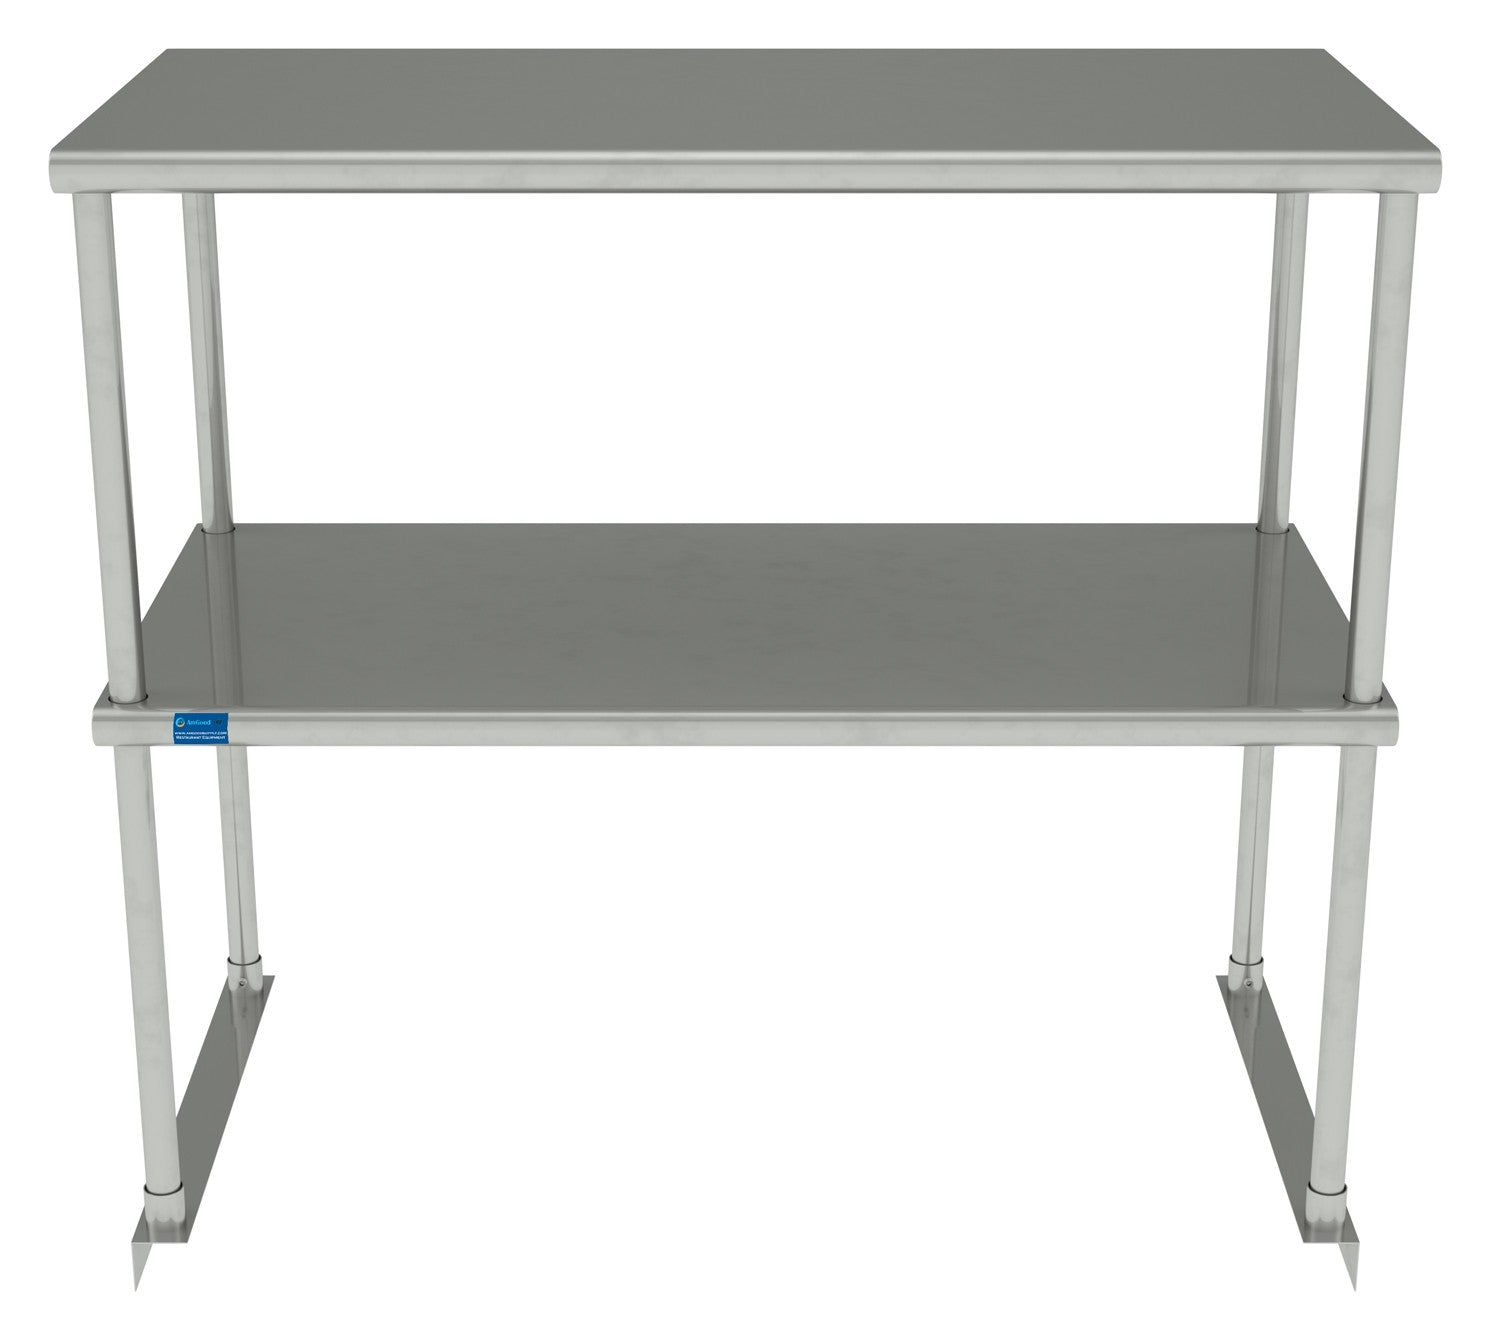 "18"" X 36"" Stainless Steel Double-Tier Shelf - AmGoodSupply.com"